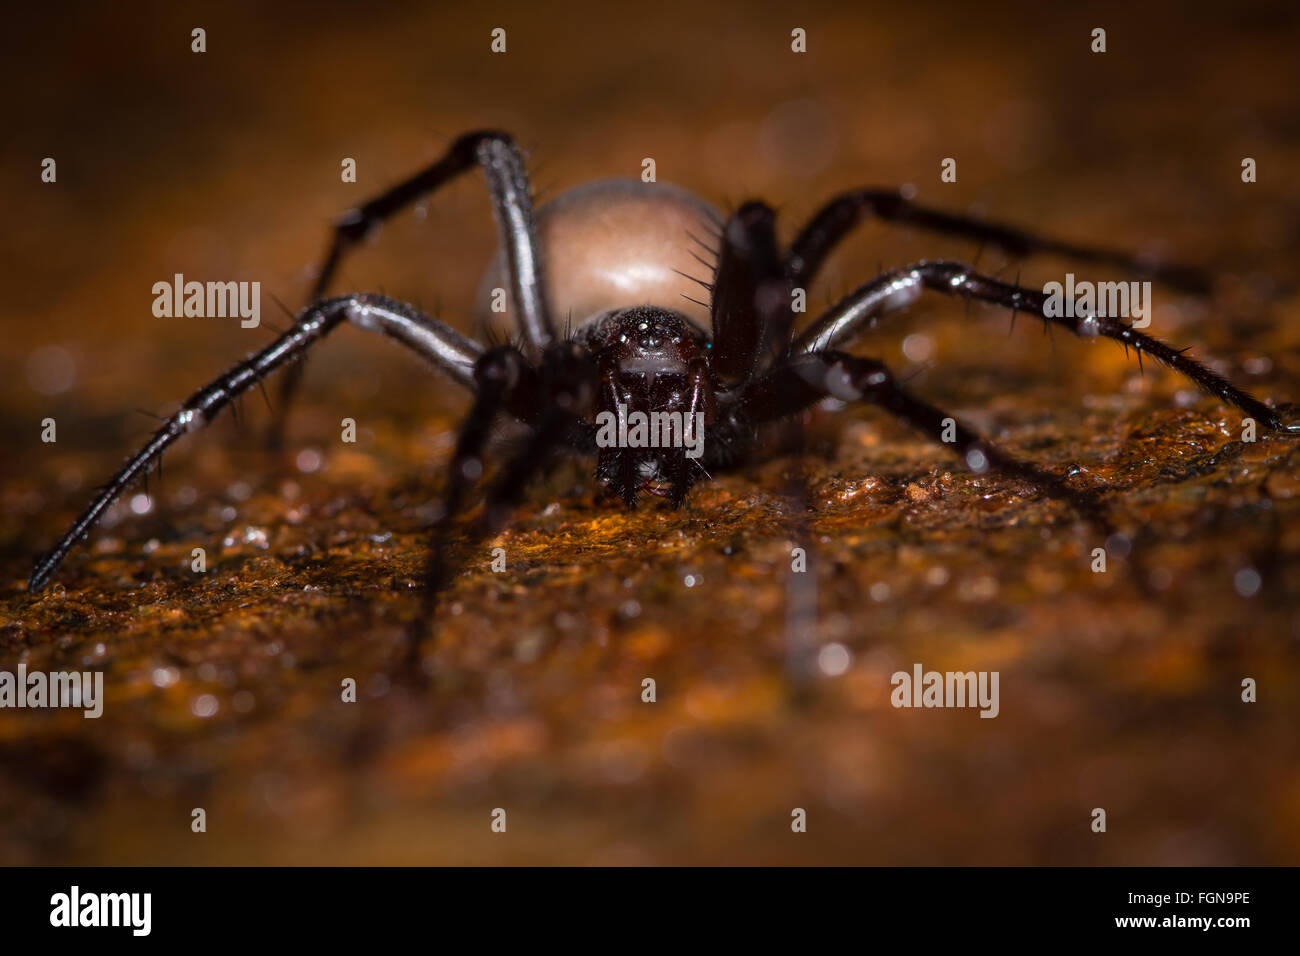 European cave spider (Meta menardi) mature female in the family Tetragnathidae, seen from in front on a rusty drain - Stock Image